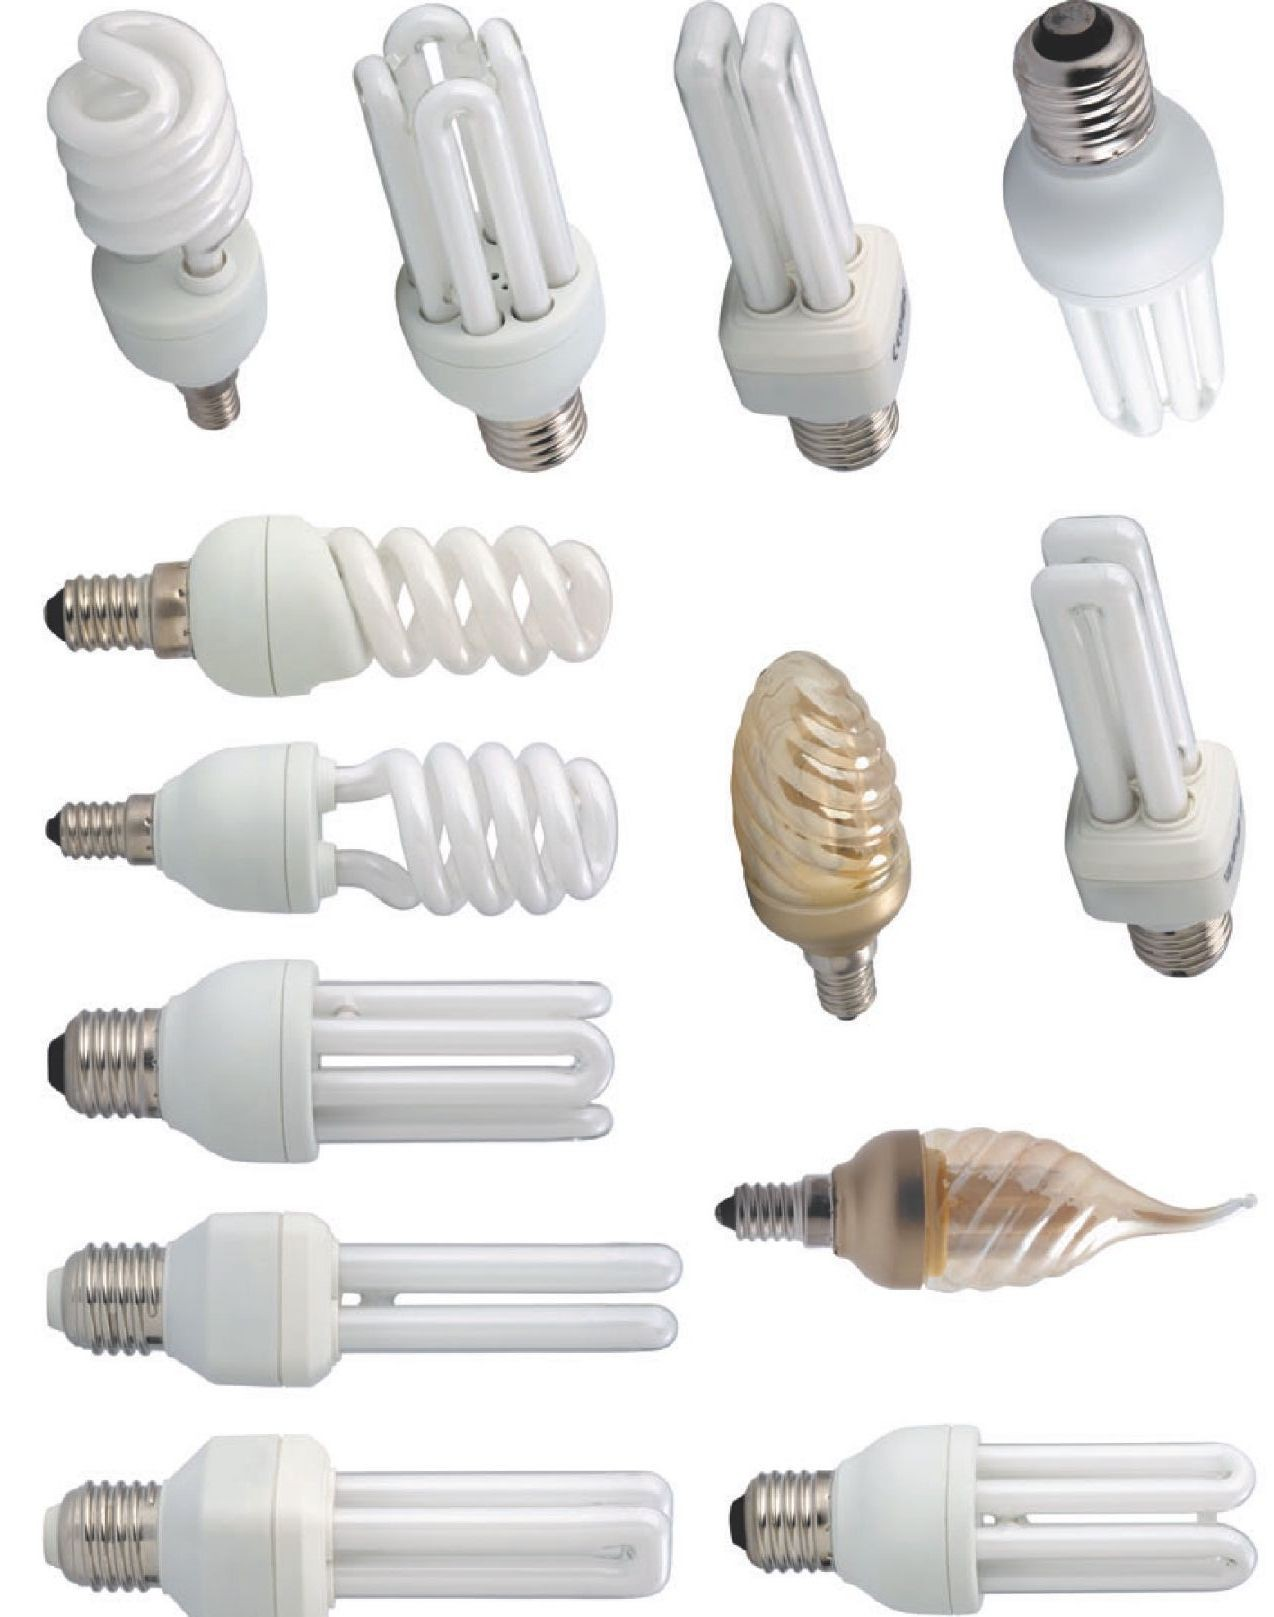 Choosing The Light Bulb Pros And Cons Of Different Light